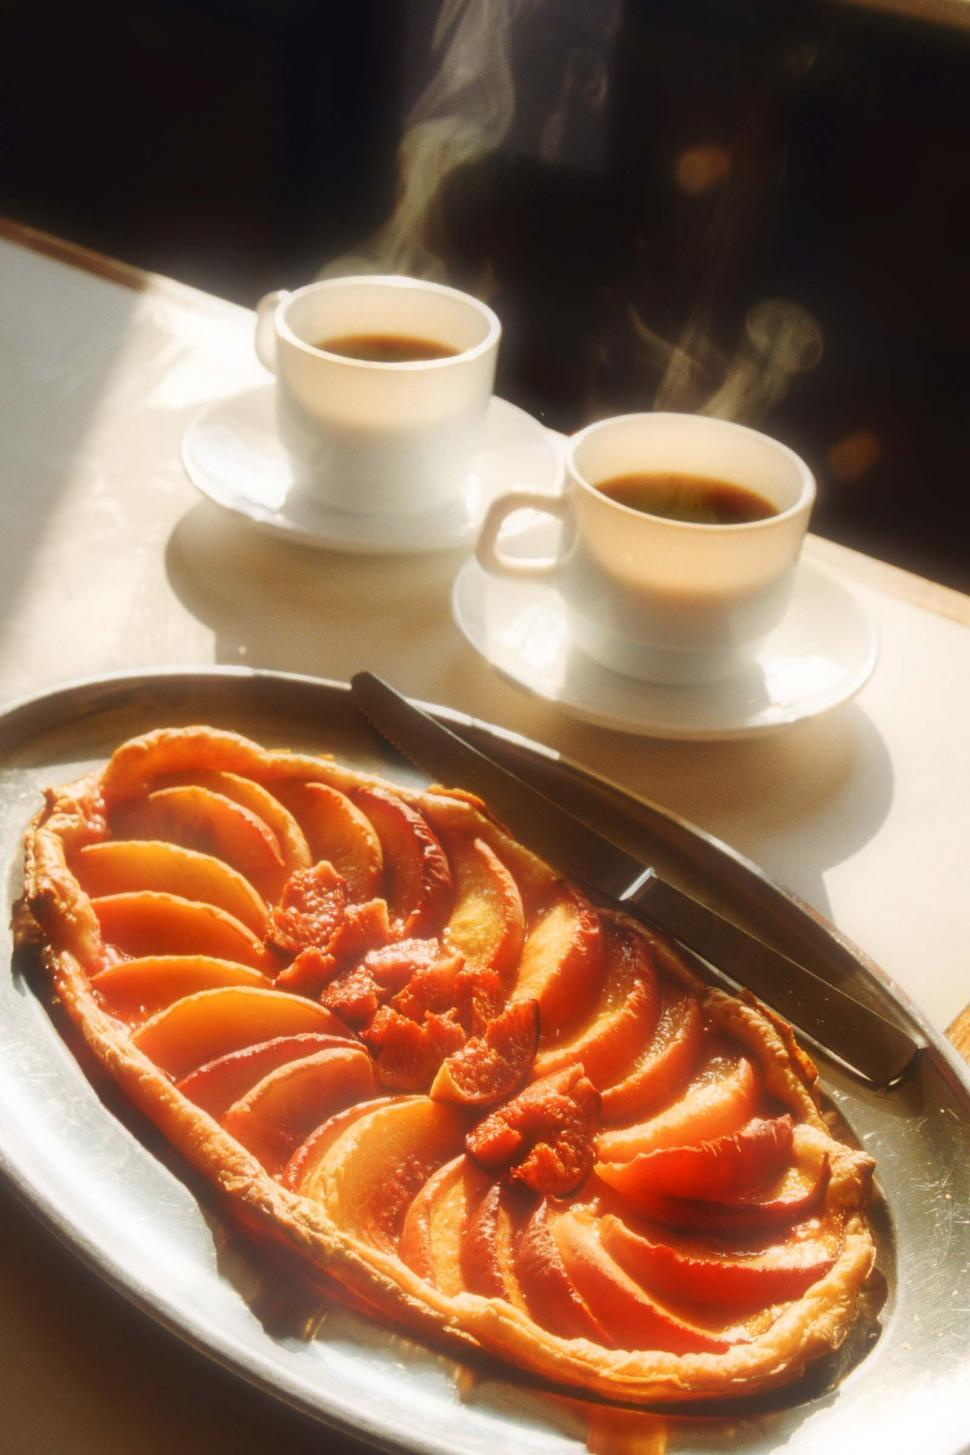 Download Free Stock HD Photo of Peach Tart with Two Cups of Cofee Online